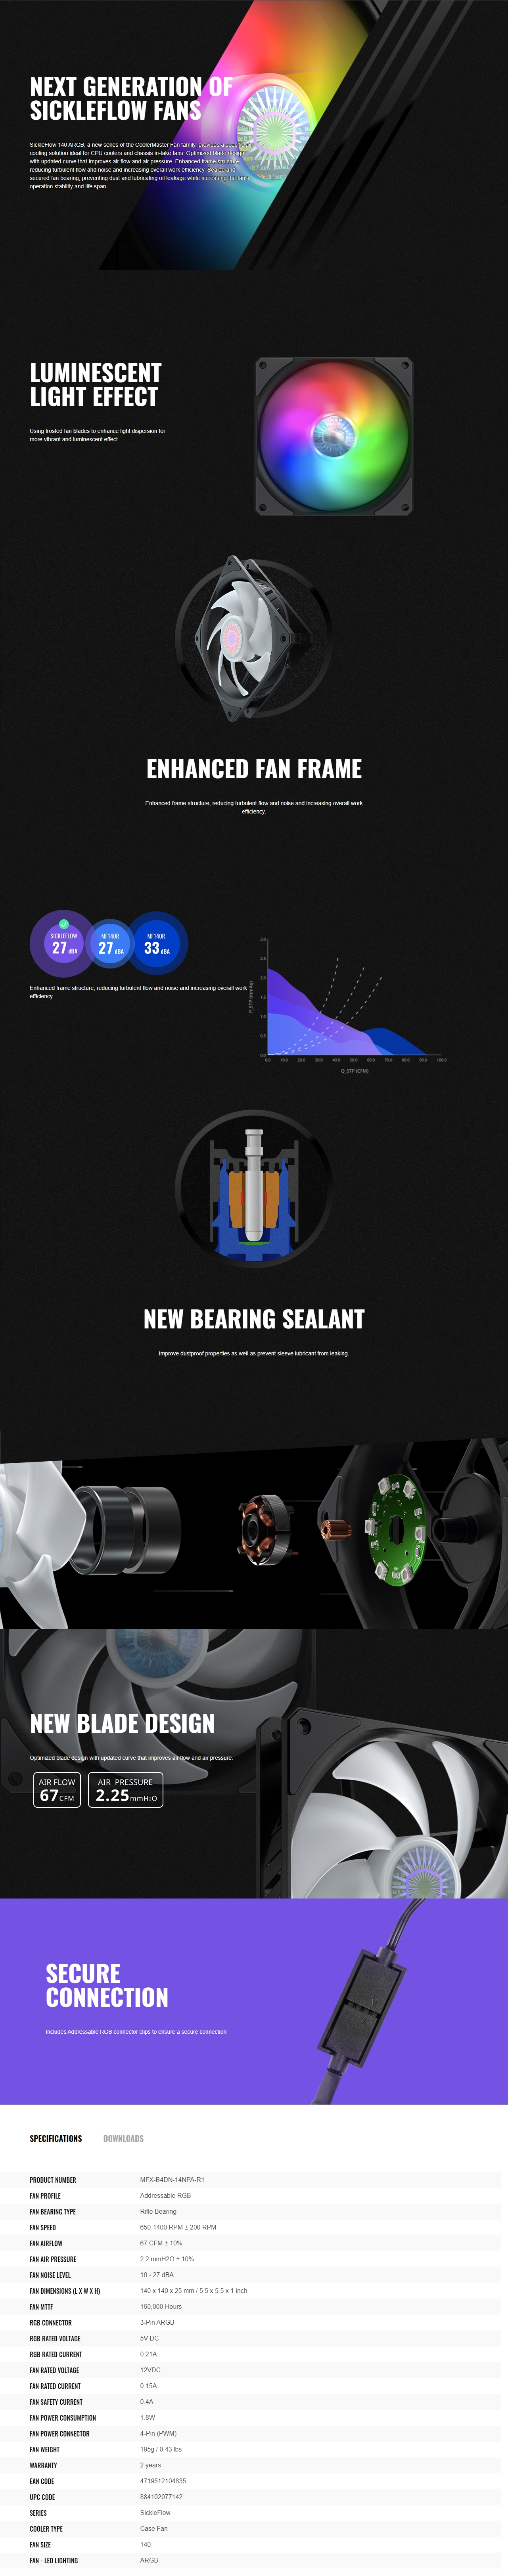 A large marketing image providing additional information about the product Cooler Master SickleFlow 140 ARGB 140mm Cooling Fan - Additional alt info not provided